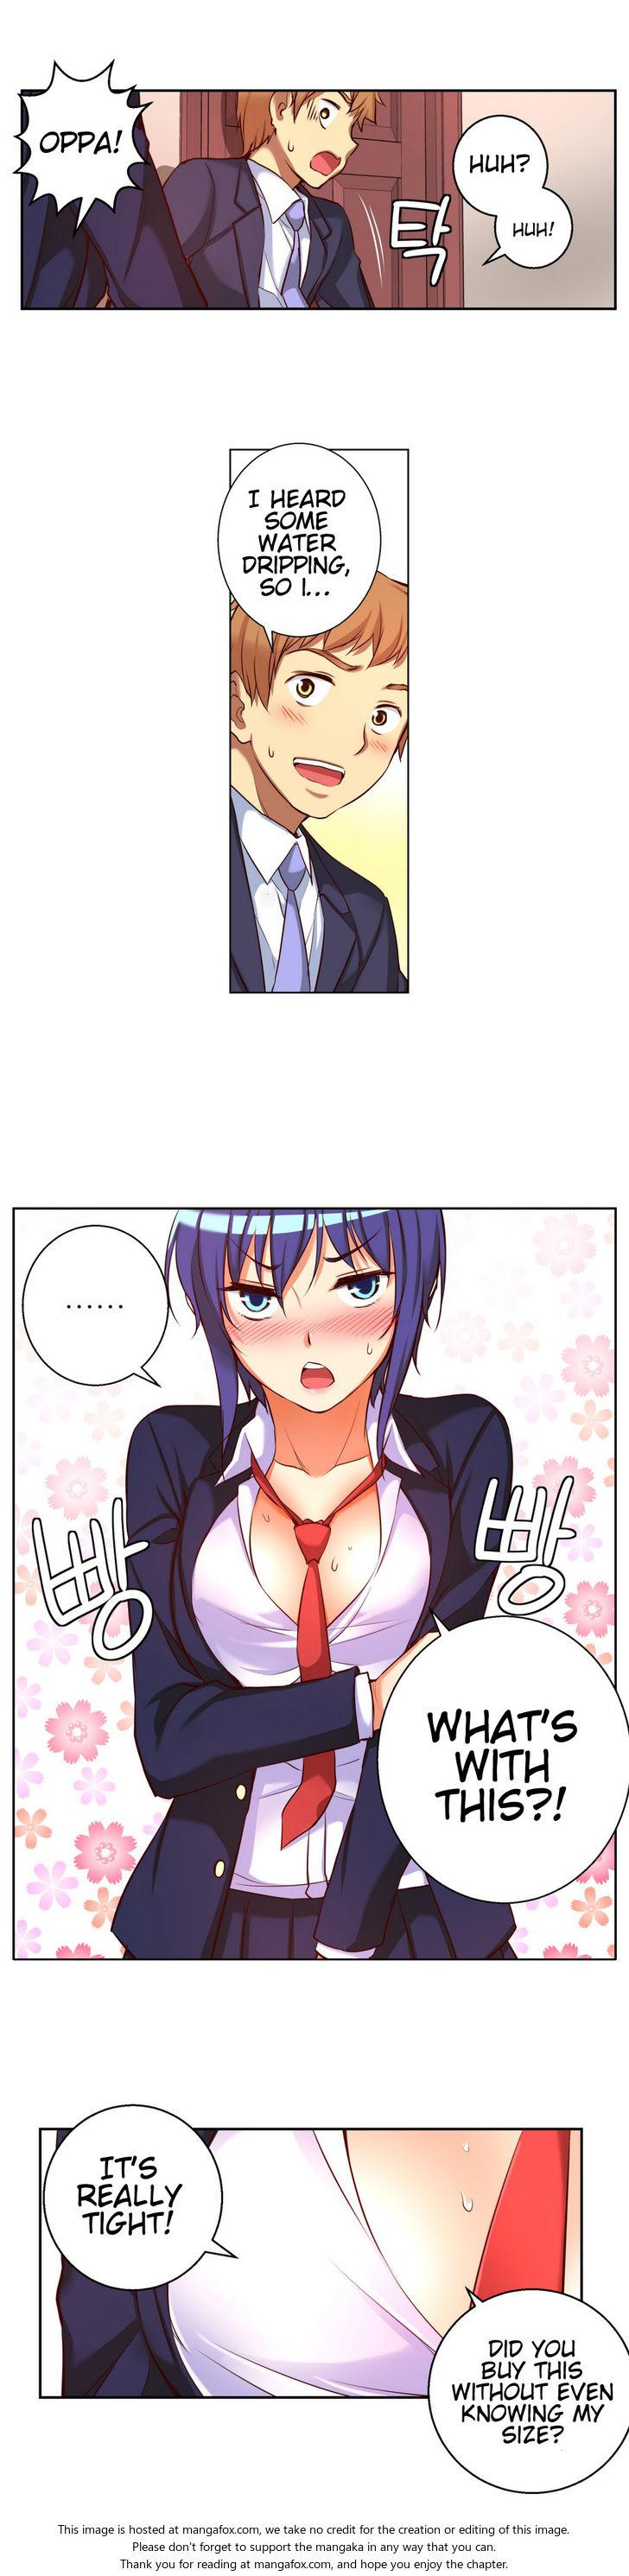 [Donggul Gom] She is Young (English) Part 1/2 274